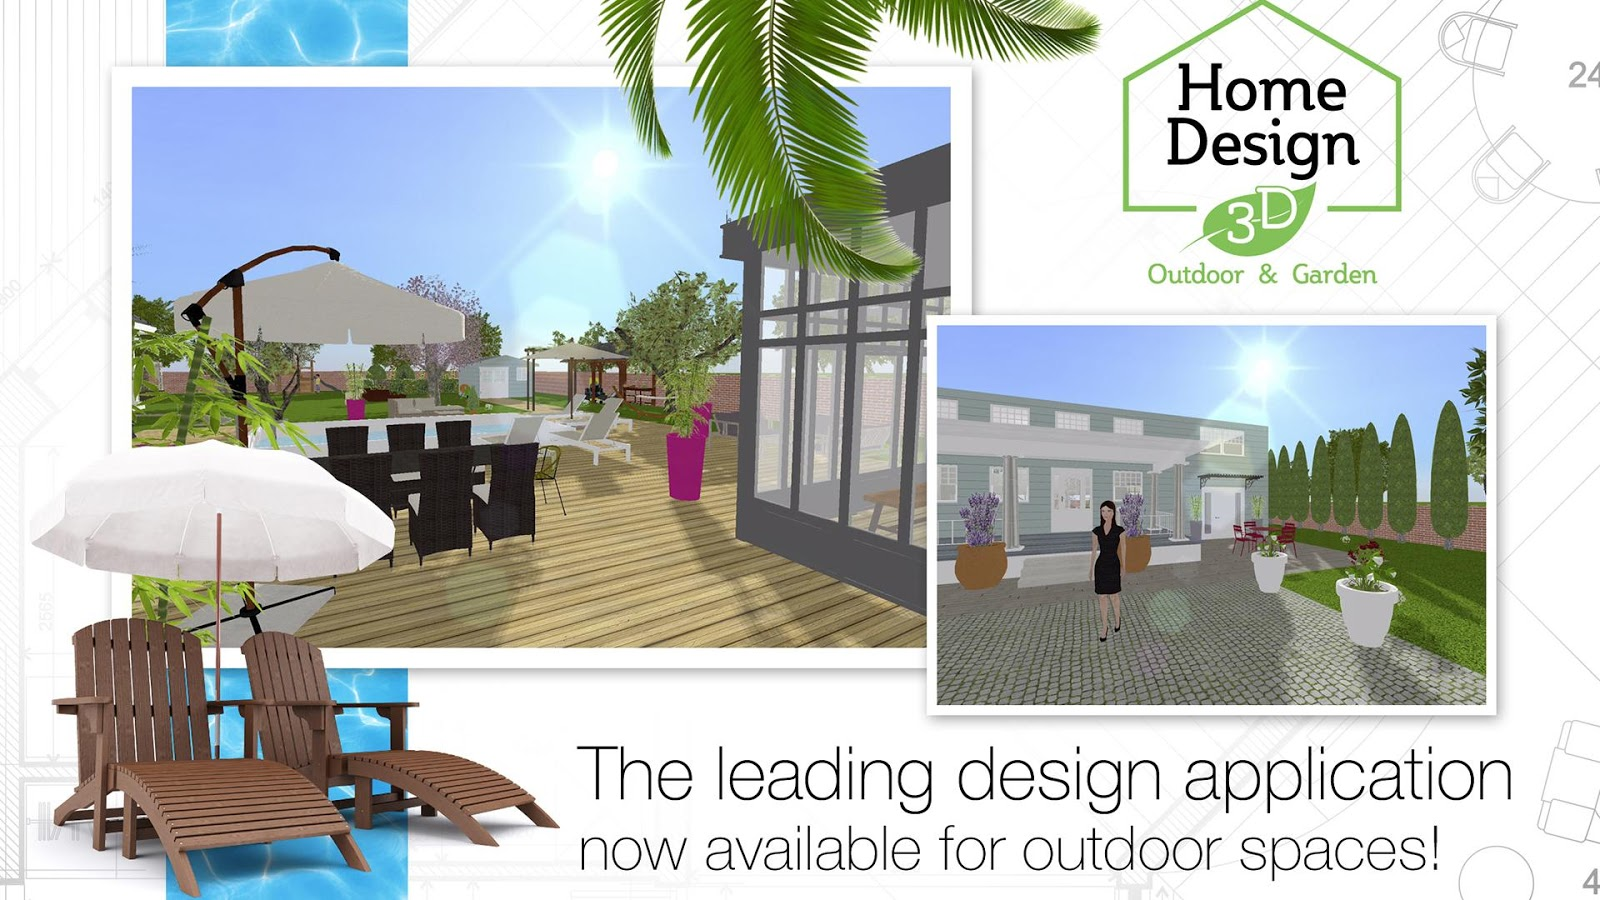 Home design 3d outdoor garden 4 2 4 screenshot 1